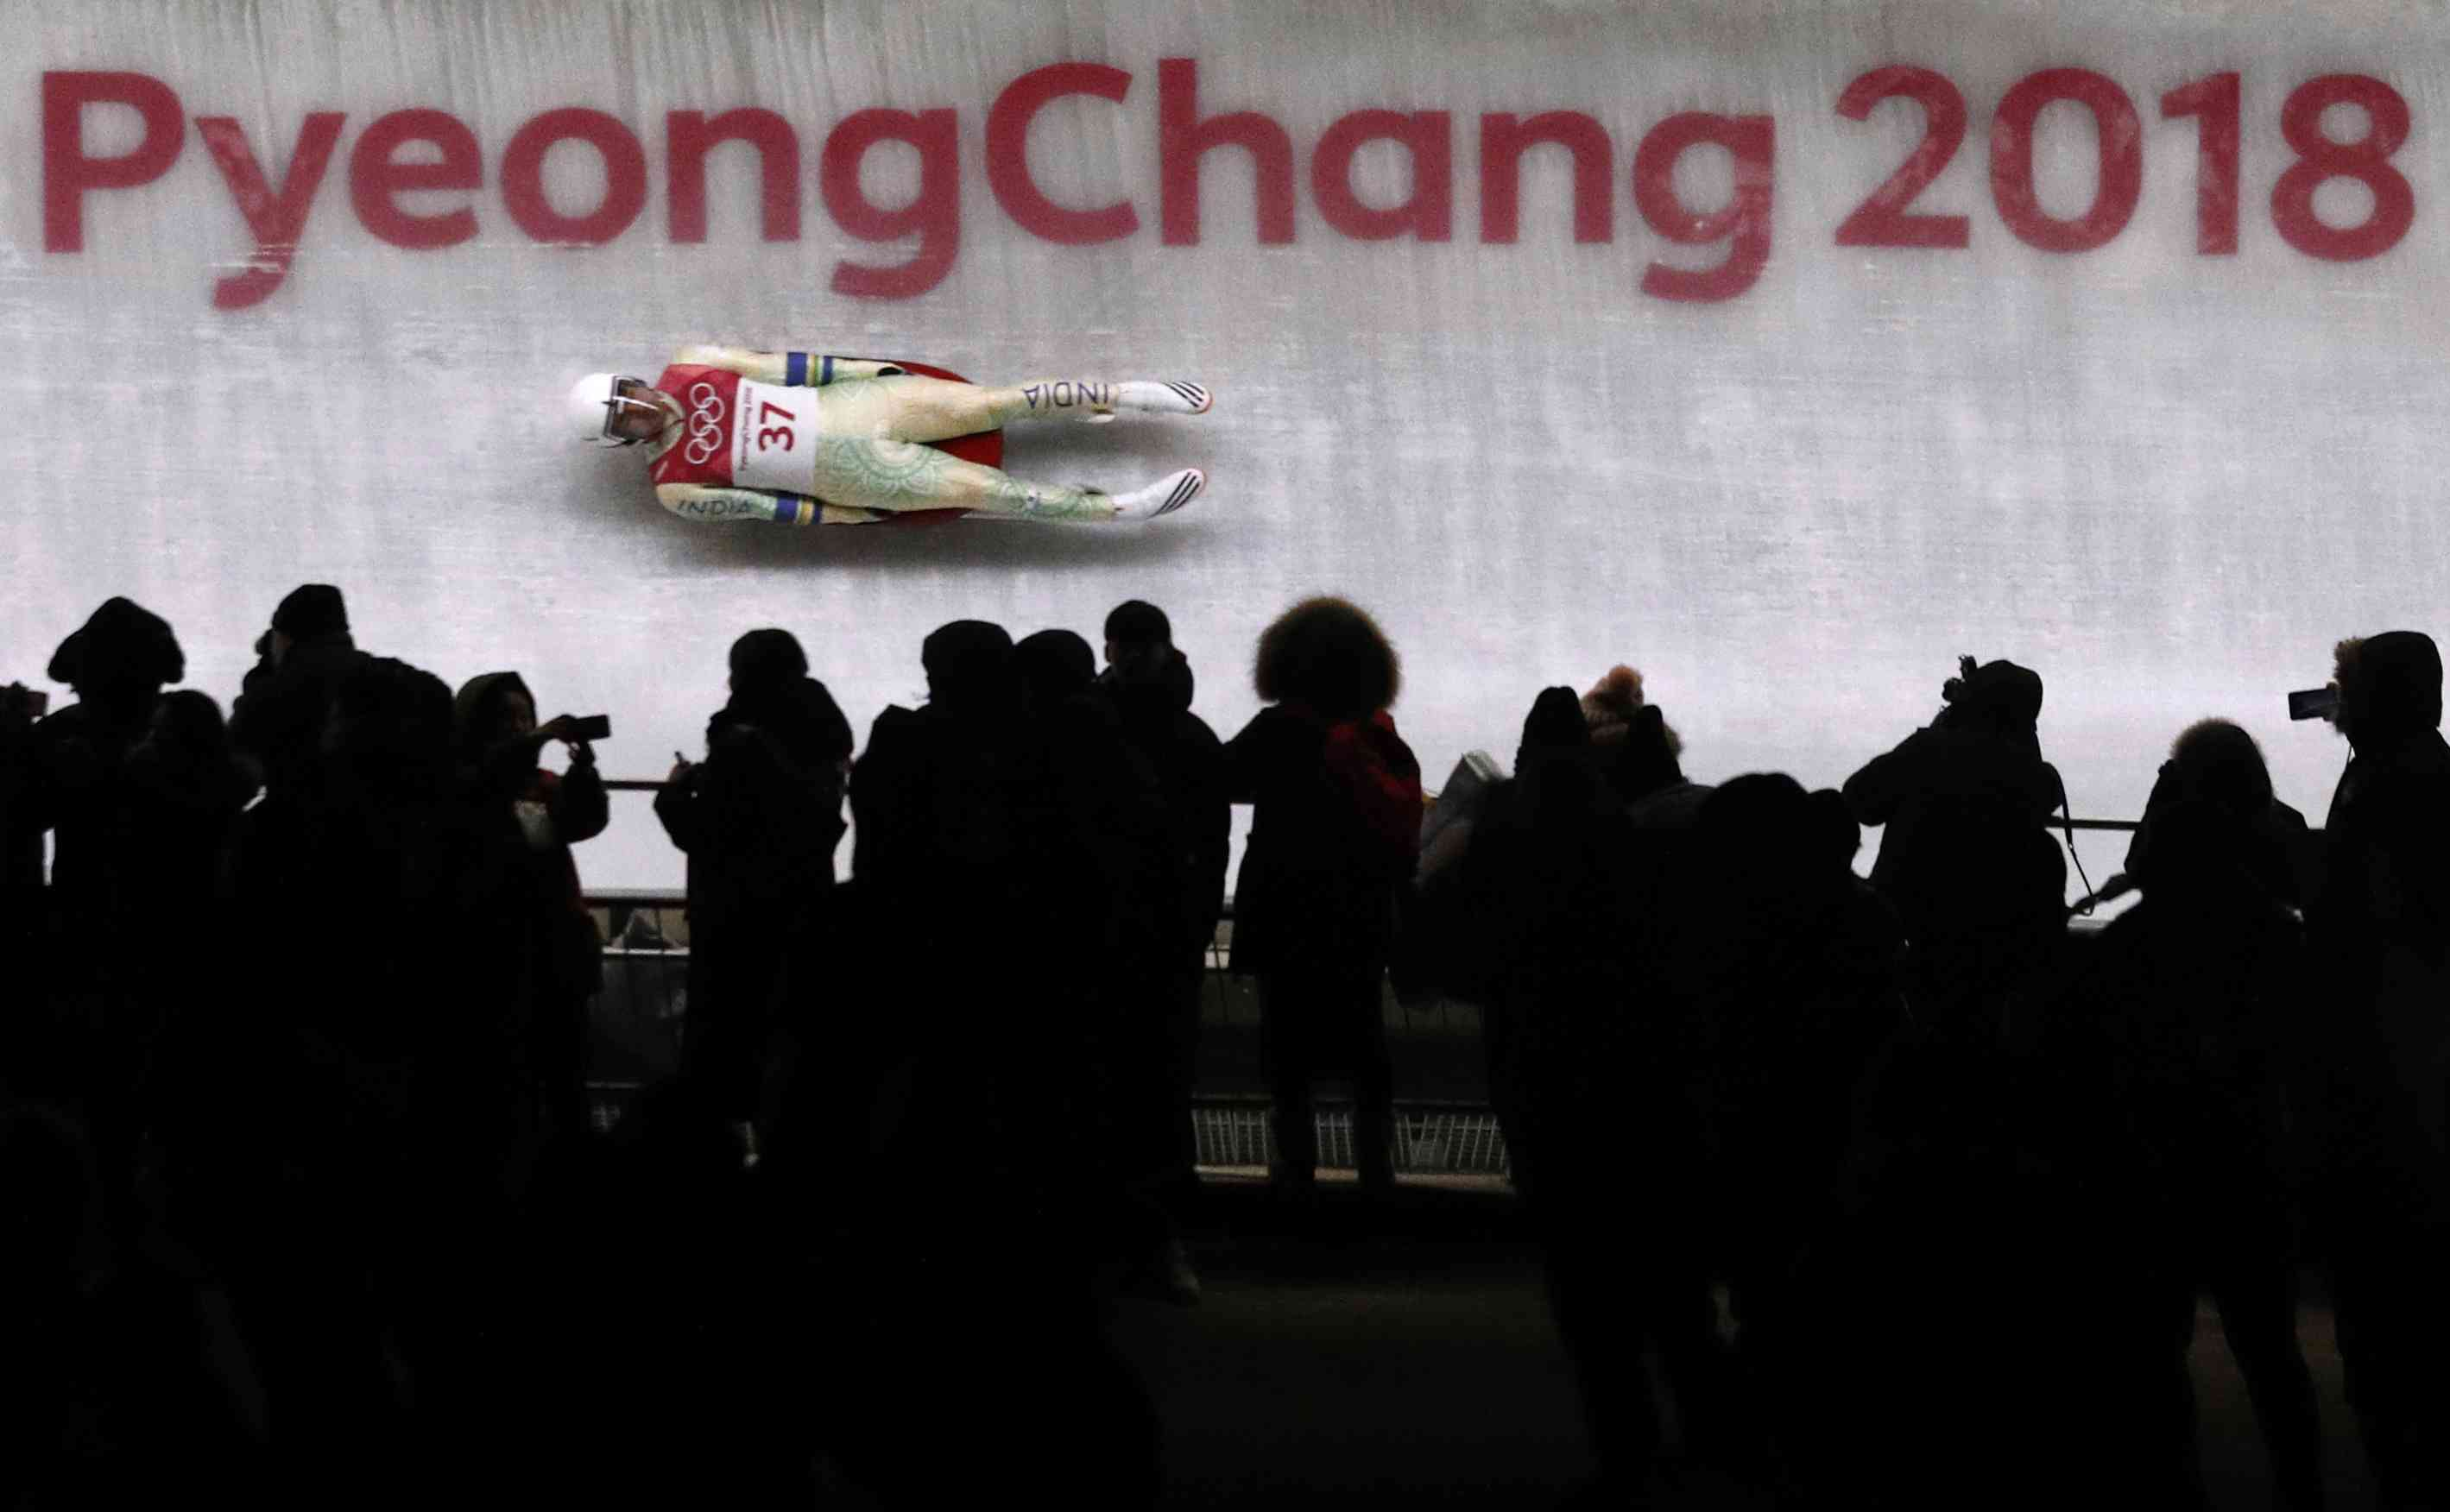 Shiva Keshavan of India slides down the luge track at his sixth and final Winter Olympics in Pyeongchang, South Korea (Reuters)